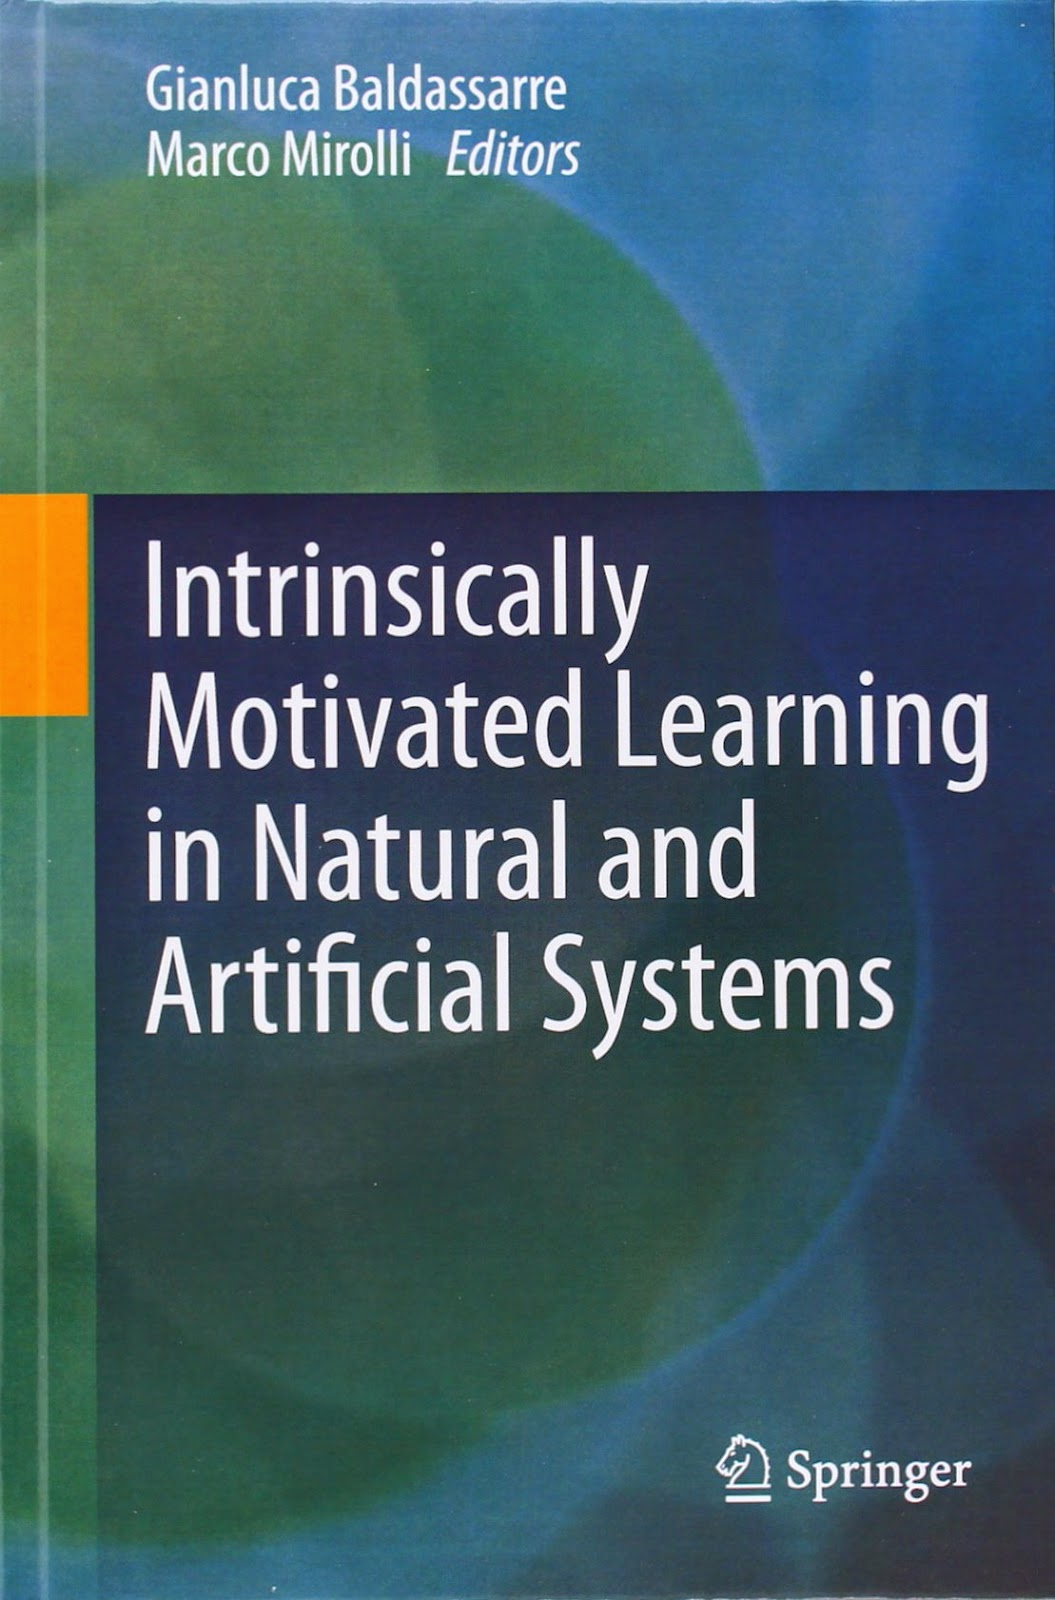 http://www.kingcheapebooks.com/2015/02/intrinsically-motivated-learning-in.html